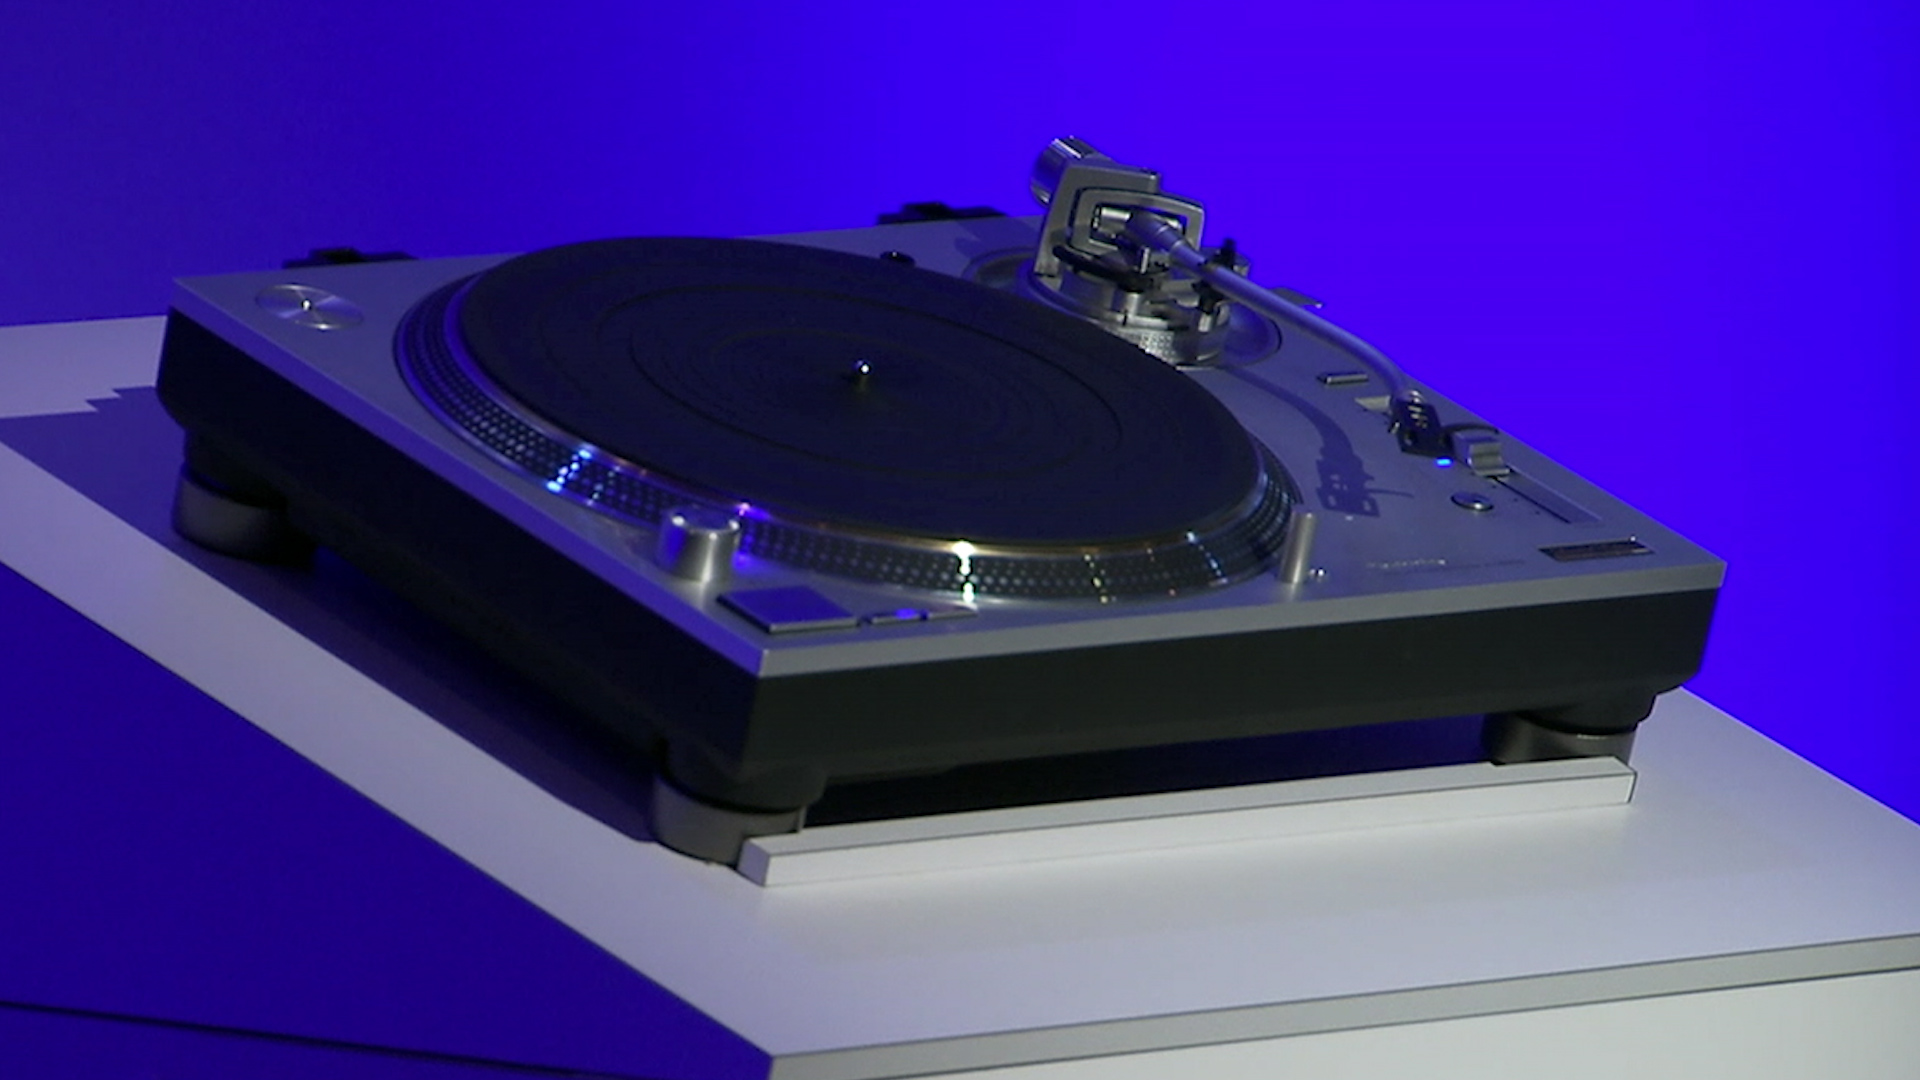 Video: Panasonic builds high-tech turntable for vinyl fans